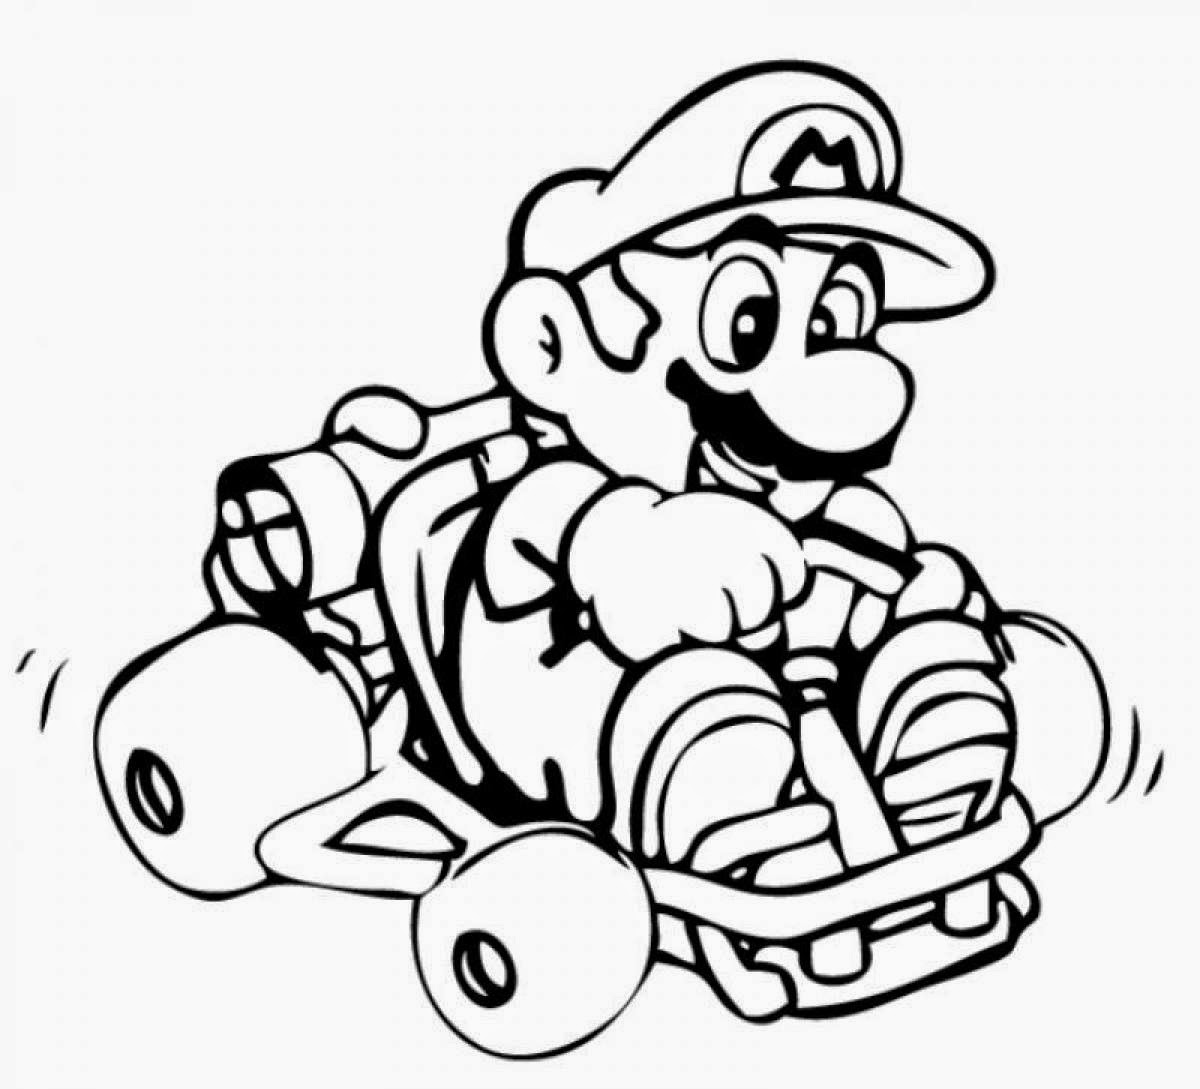 mario coloring book pages mario coloring pages themes best apps for kids book pages mario coloring